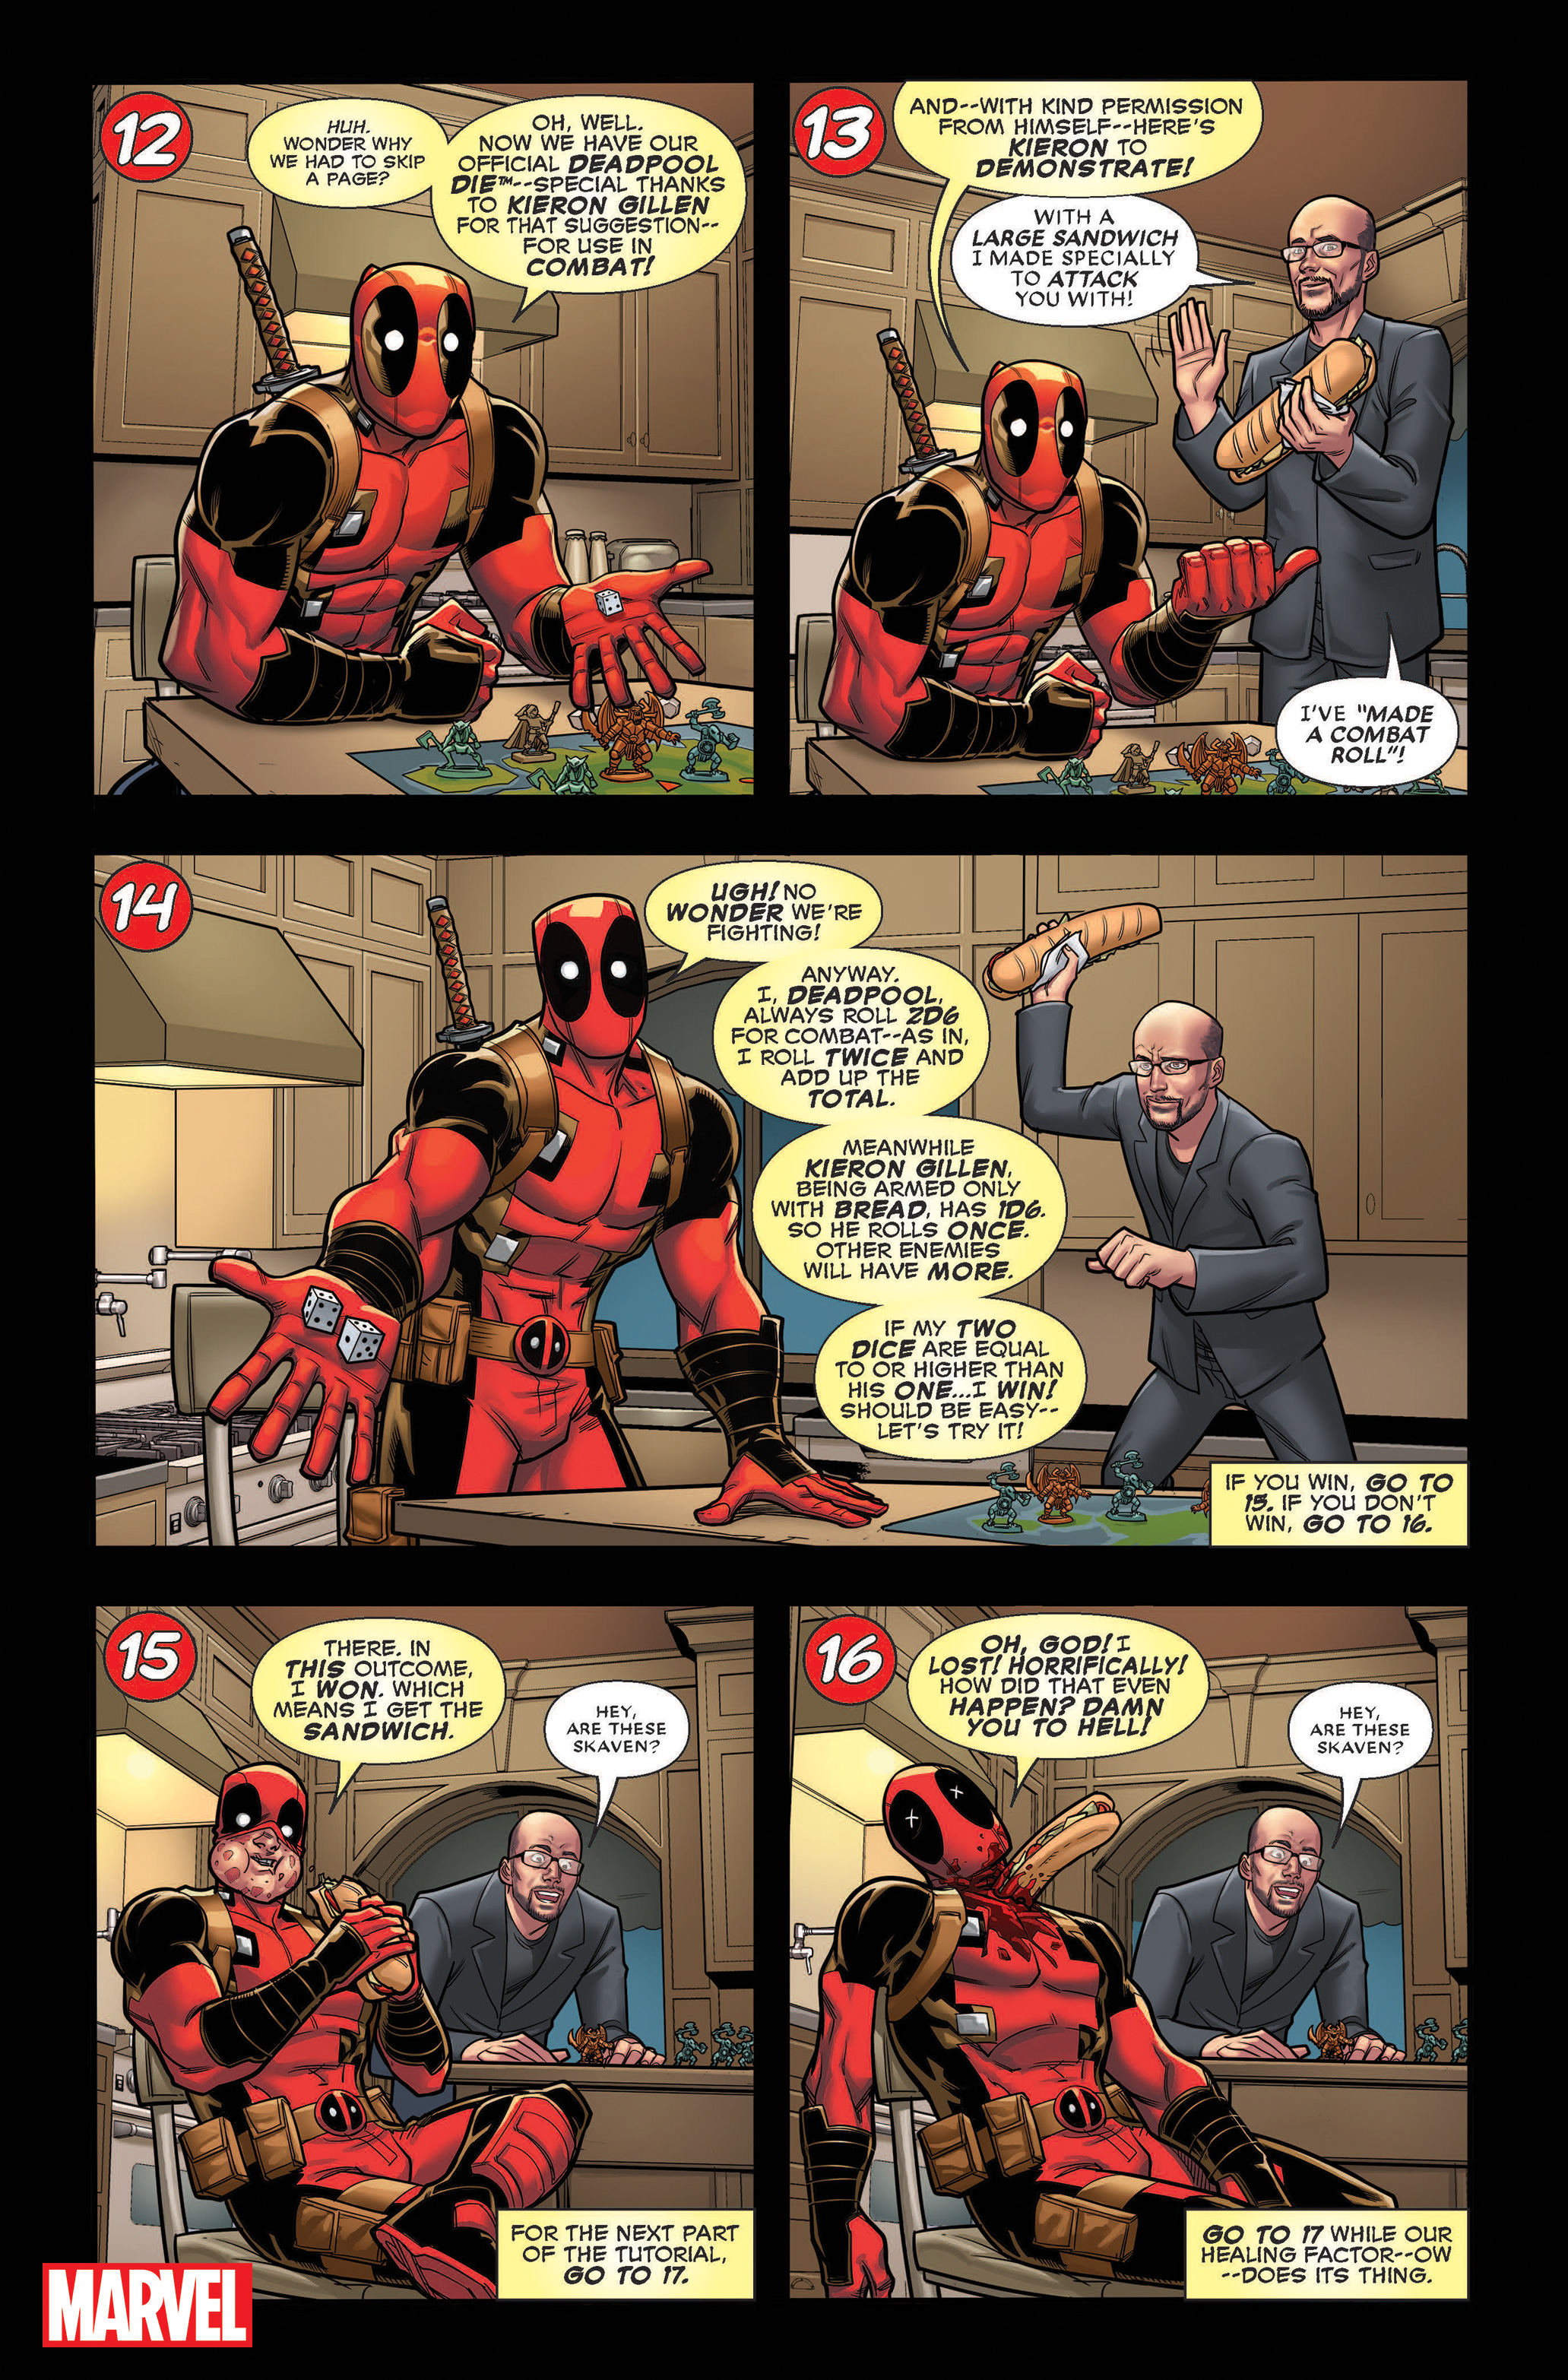 You Are Deadpool review